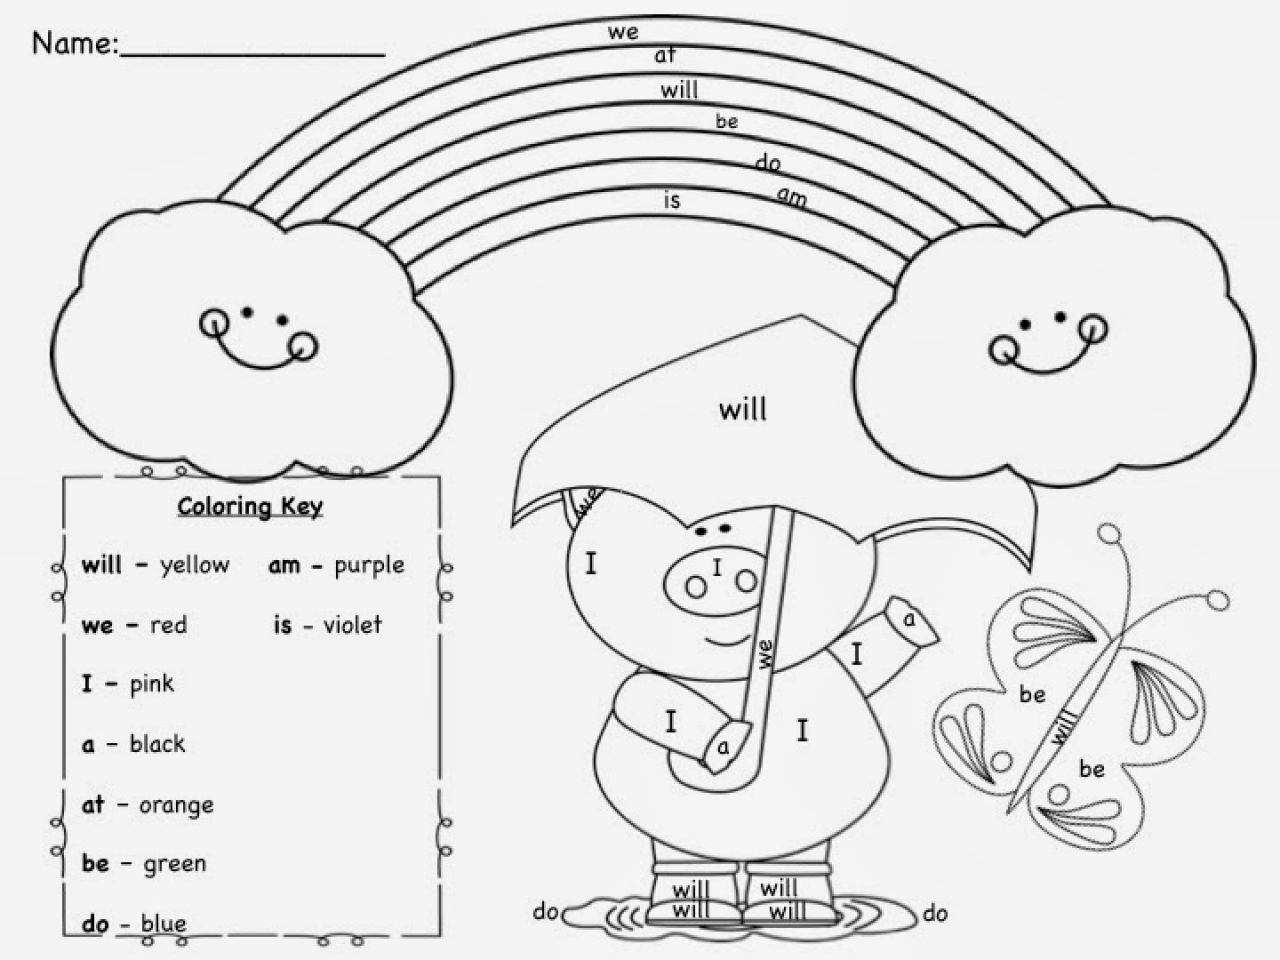 Word Coloring Pages - Sight Word Coloring Pages Coloringsuite